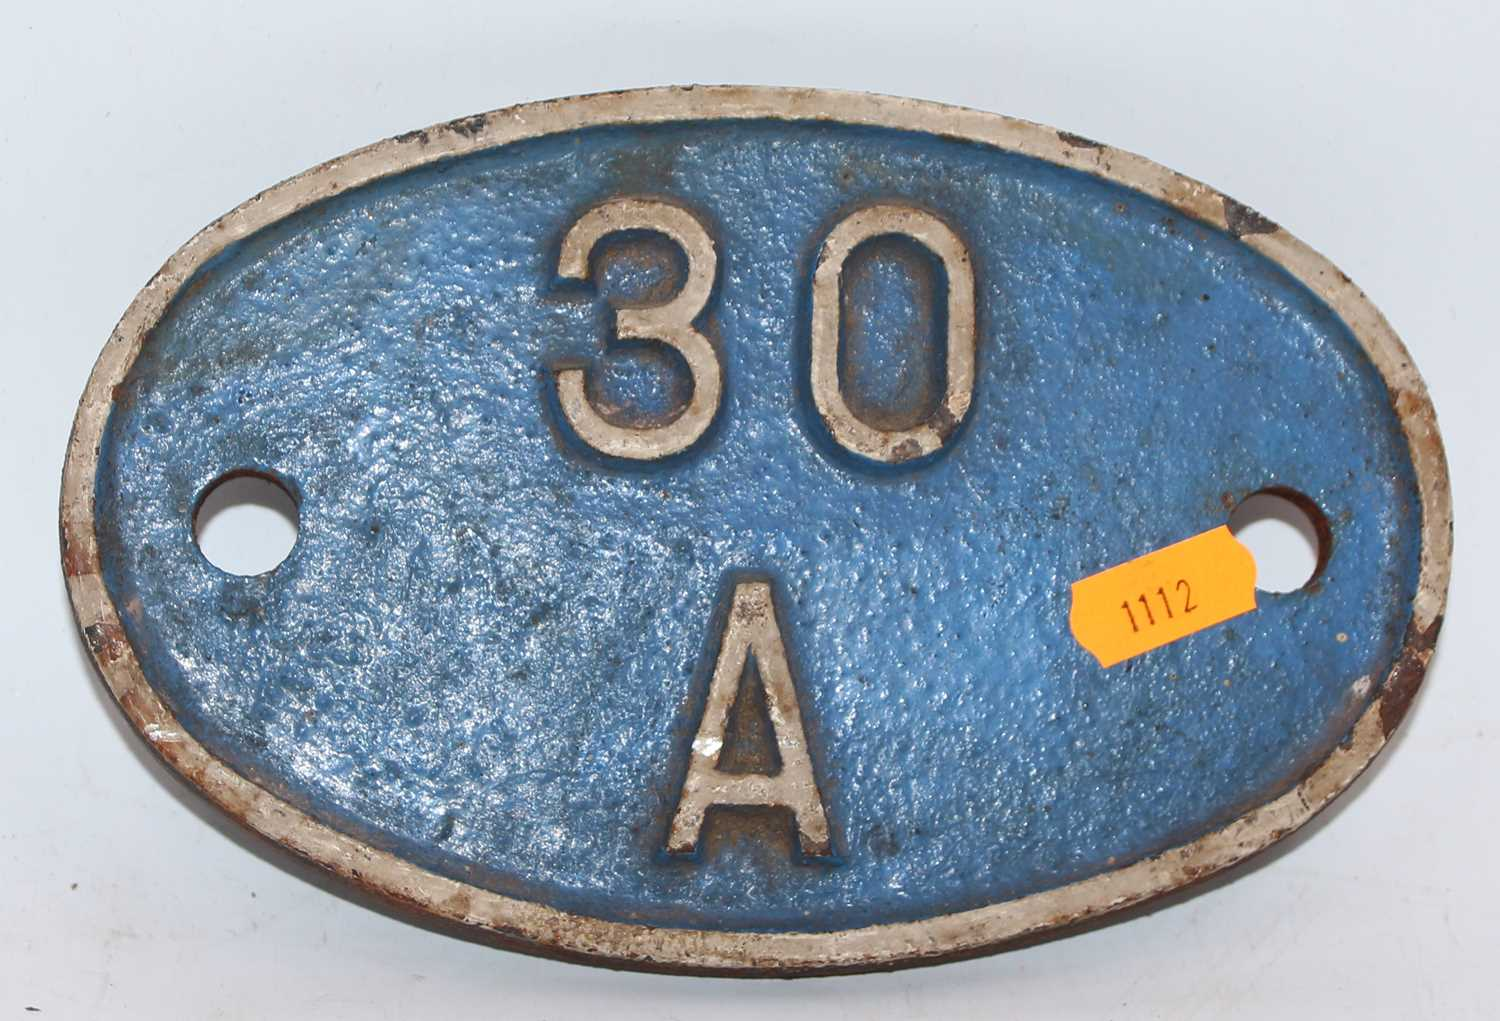 Original Shed Plate, 30a, Stratford, white on blue